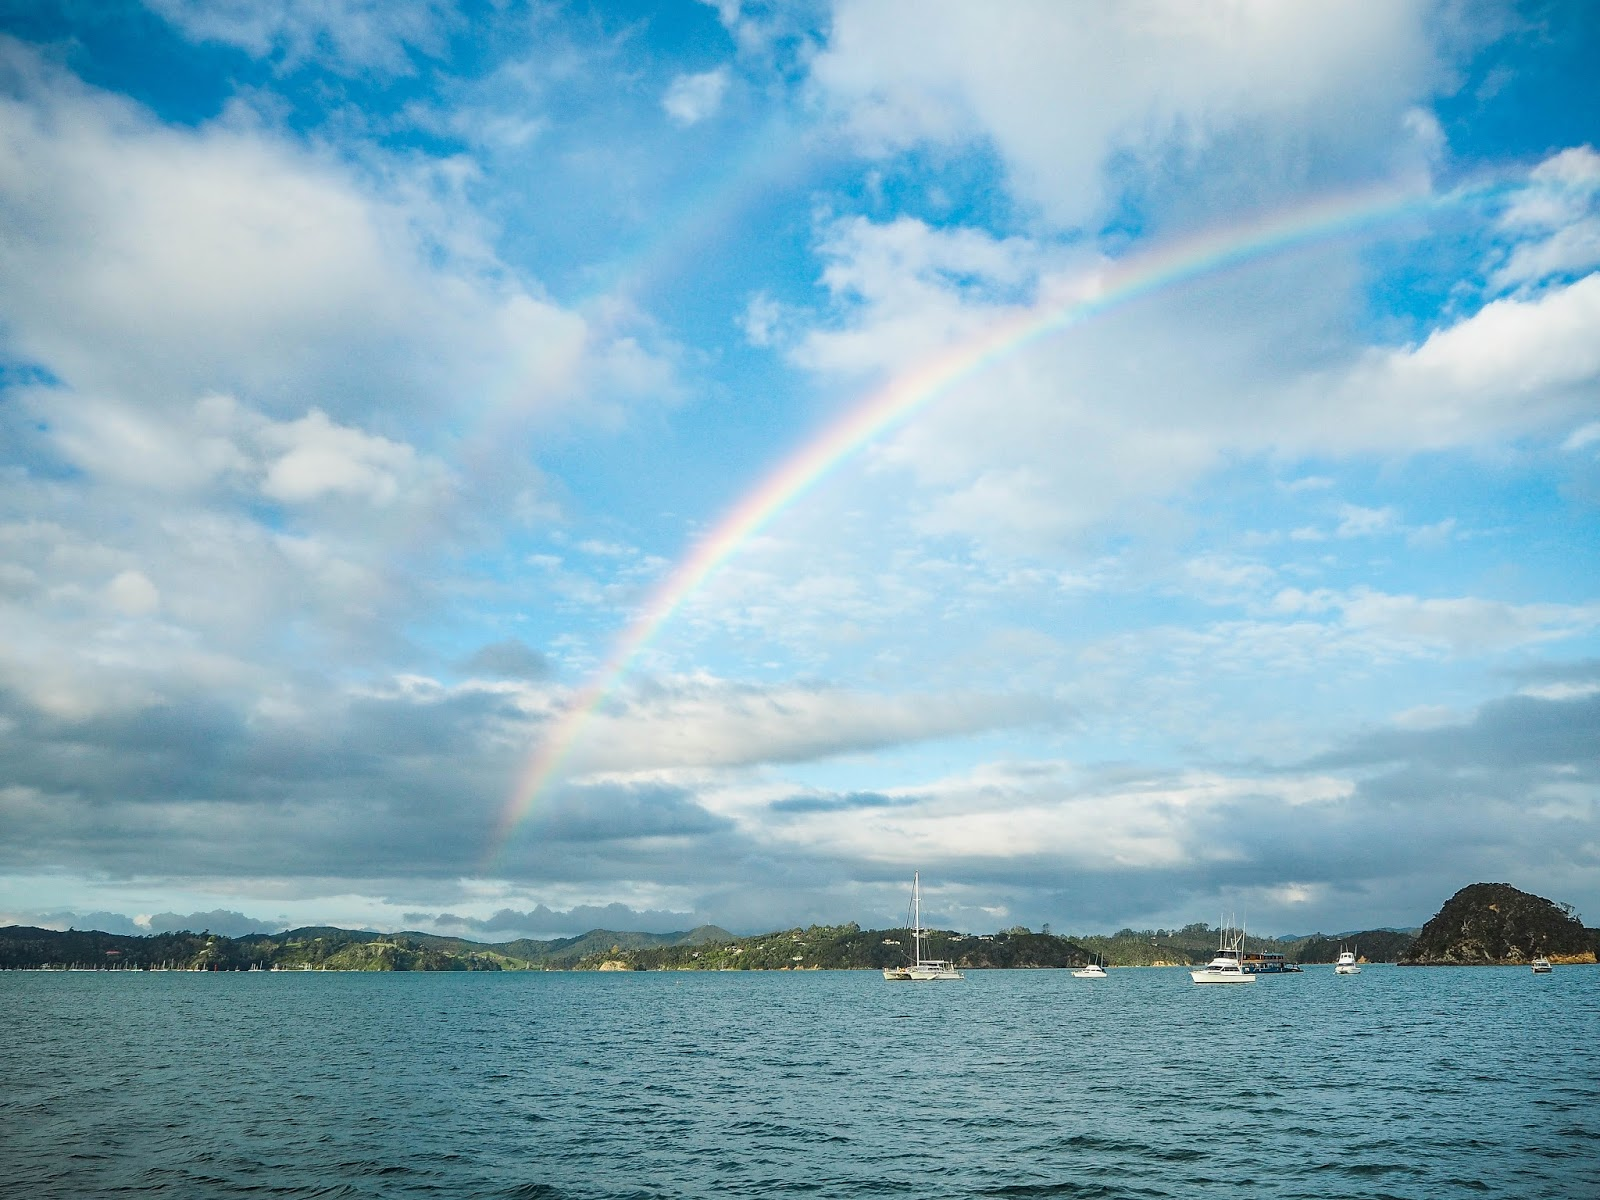 Rainbow over Paihia, New Zealand